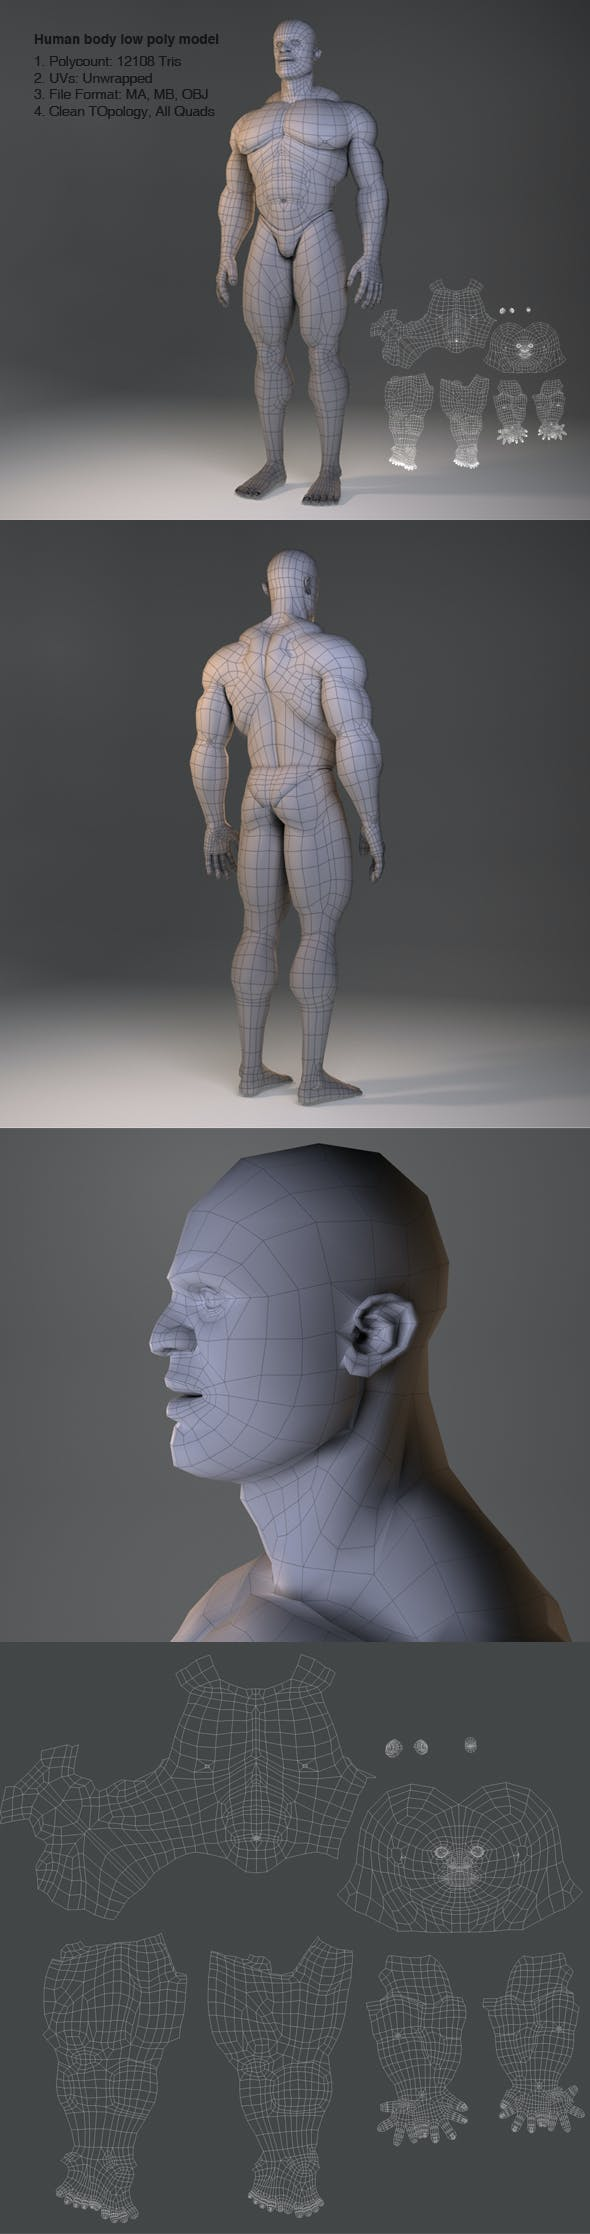 Low Poly Male Body Model - 3DOcean Item for Sale